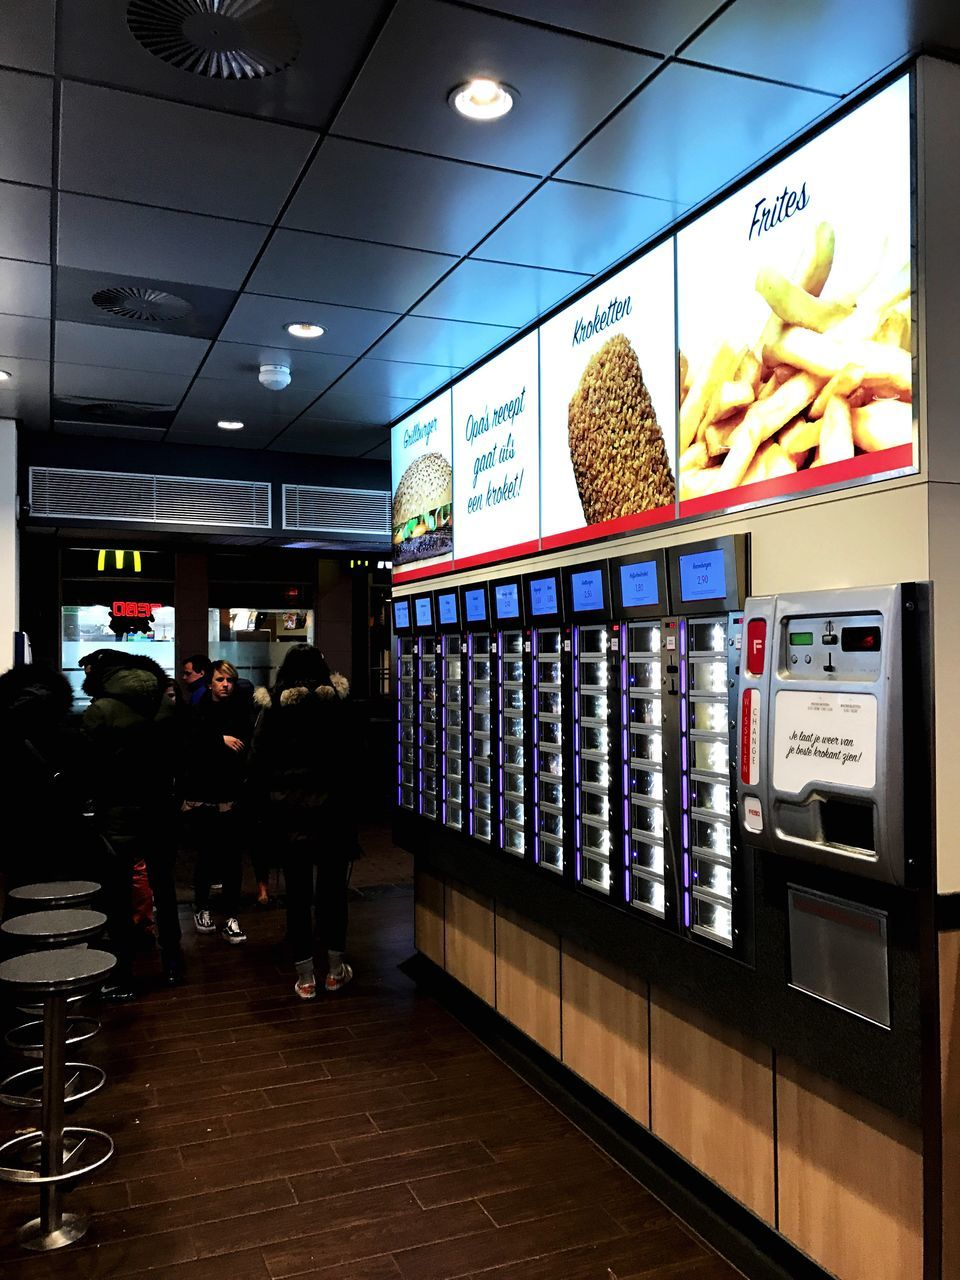 store, retail, customer, choice, consumerism, indoors, illuminated, real people, food, technology, vending machine, day, people